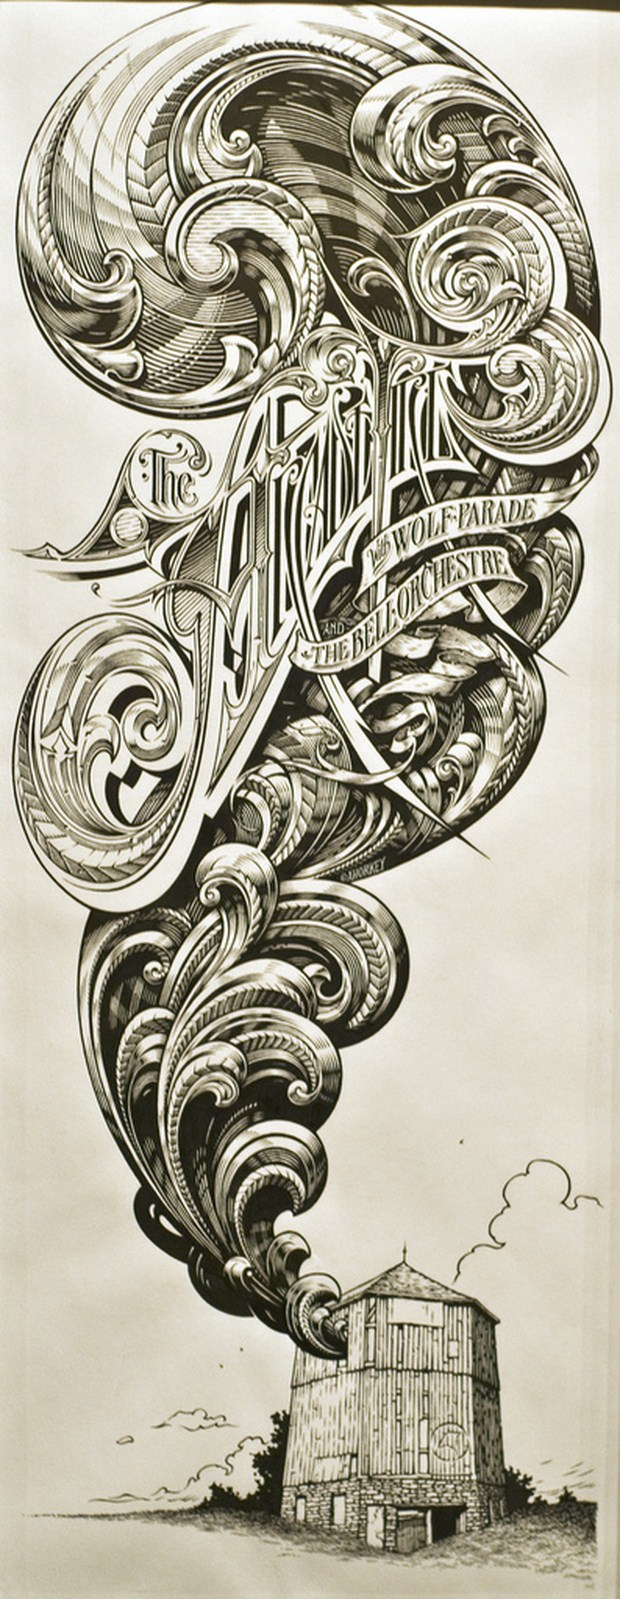 Typography Design for Your Inspiration | Downgraf